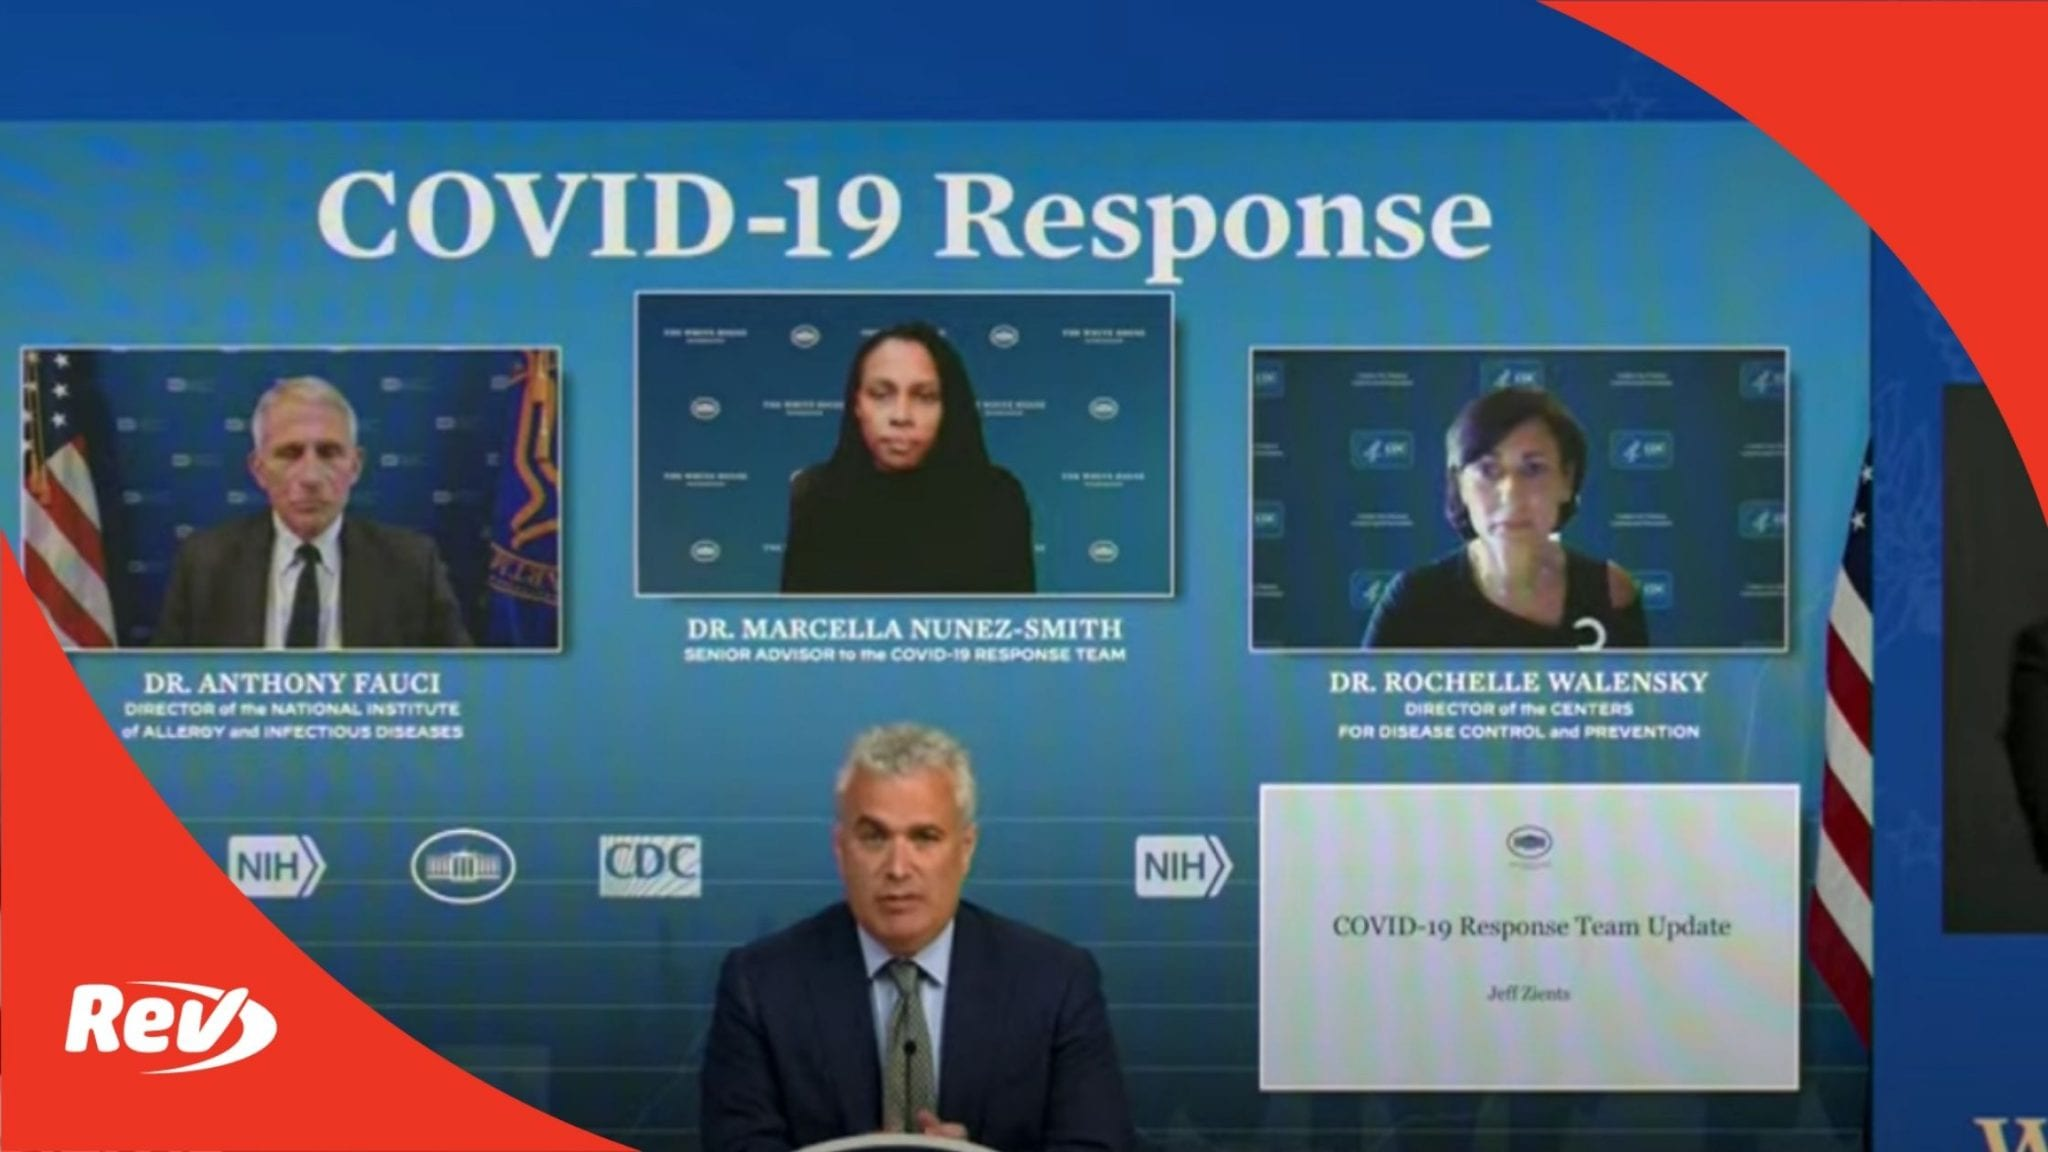 White House COVID-19 Task Force, Dr. Fauci Press Conference Transcript July 8